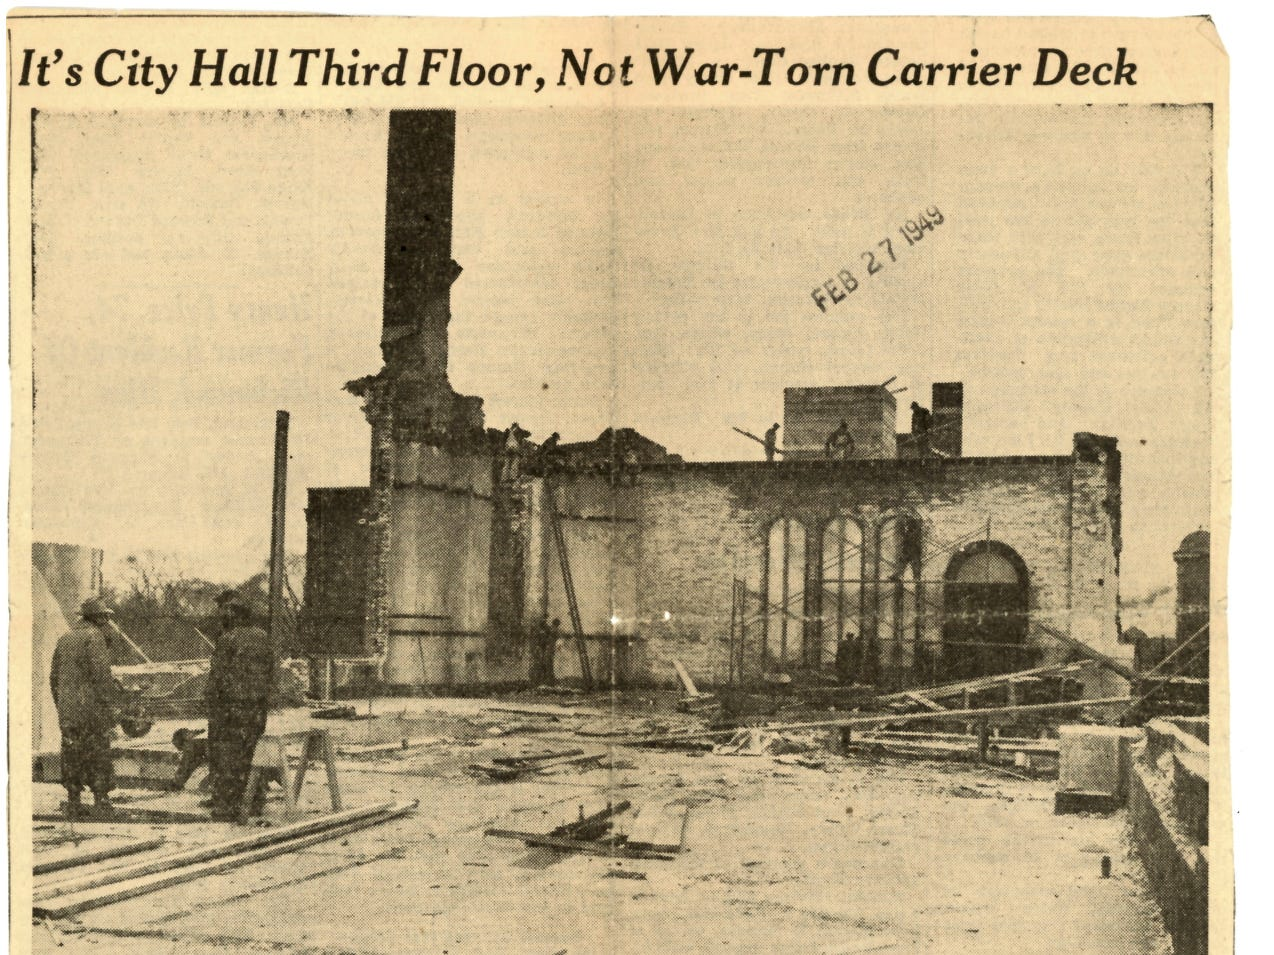 A photo printed in the Times Herald on Feb. 27, 1949 shows the remains of the Circuit Courtroom and offices that were on the third floor of City Hall. Within an hour, the fire had nearly gutten the third floor.